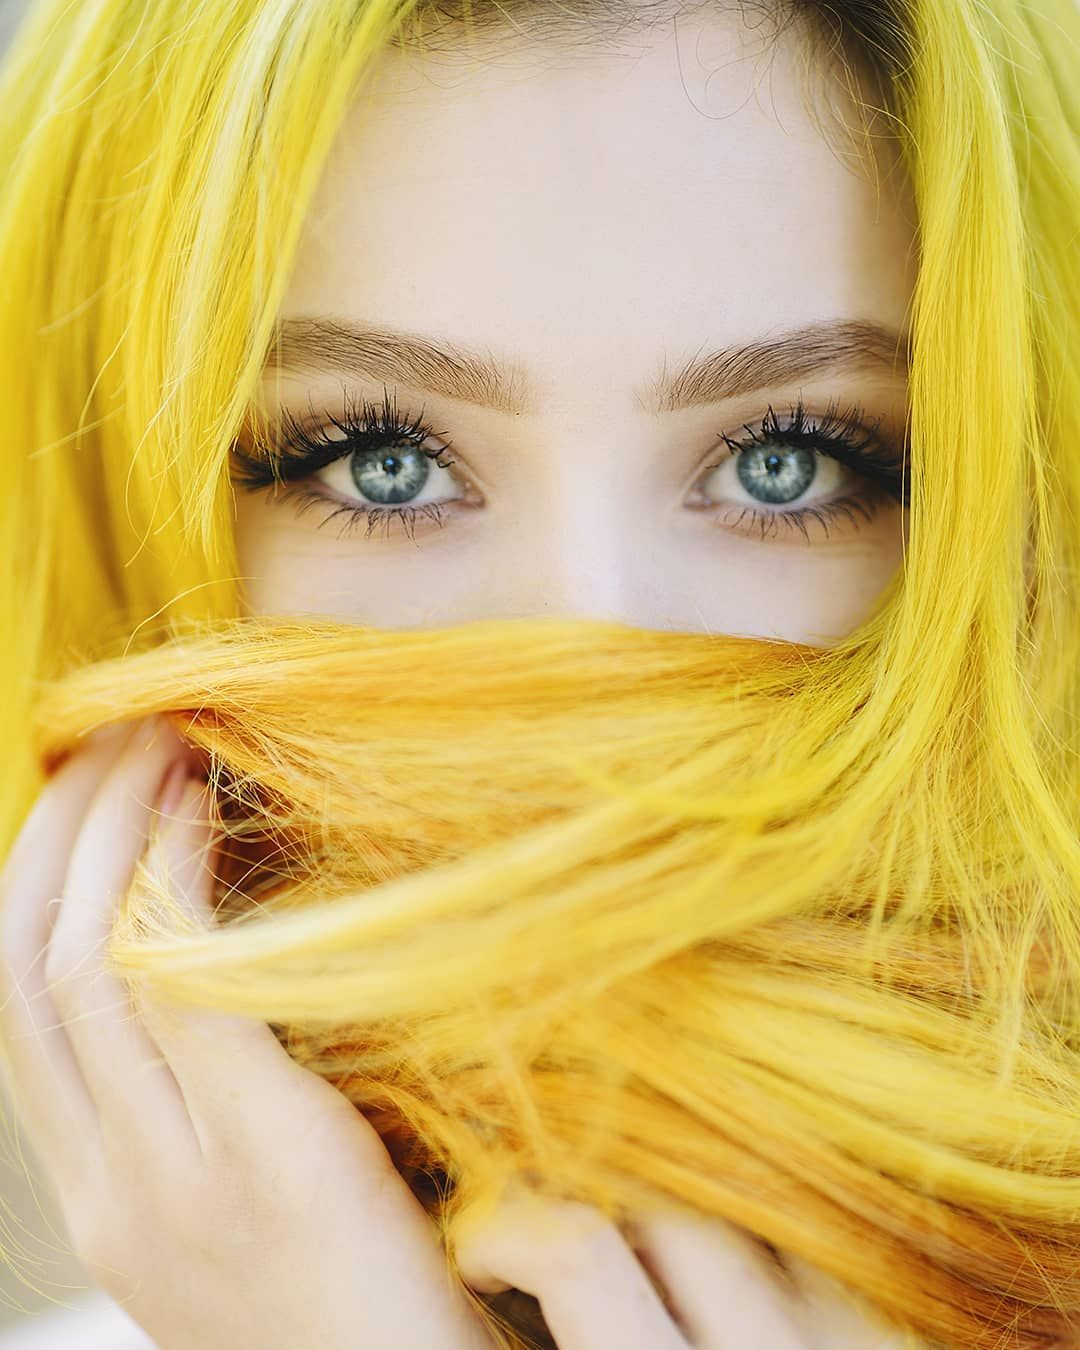 @vanjajagnic  Yellow 💛  Do you like this hair colour? Would you try it? Thank you @arcticfoxhaircolor for making my life so colourful 😊 Photo by AMAZING @jovanarikalo  #jovanarikalophotography #arcticfoxhaircolor #cosmicsunshine #neonmoon #yellowhair #fallhairinspo #hairideas